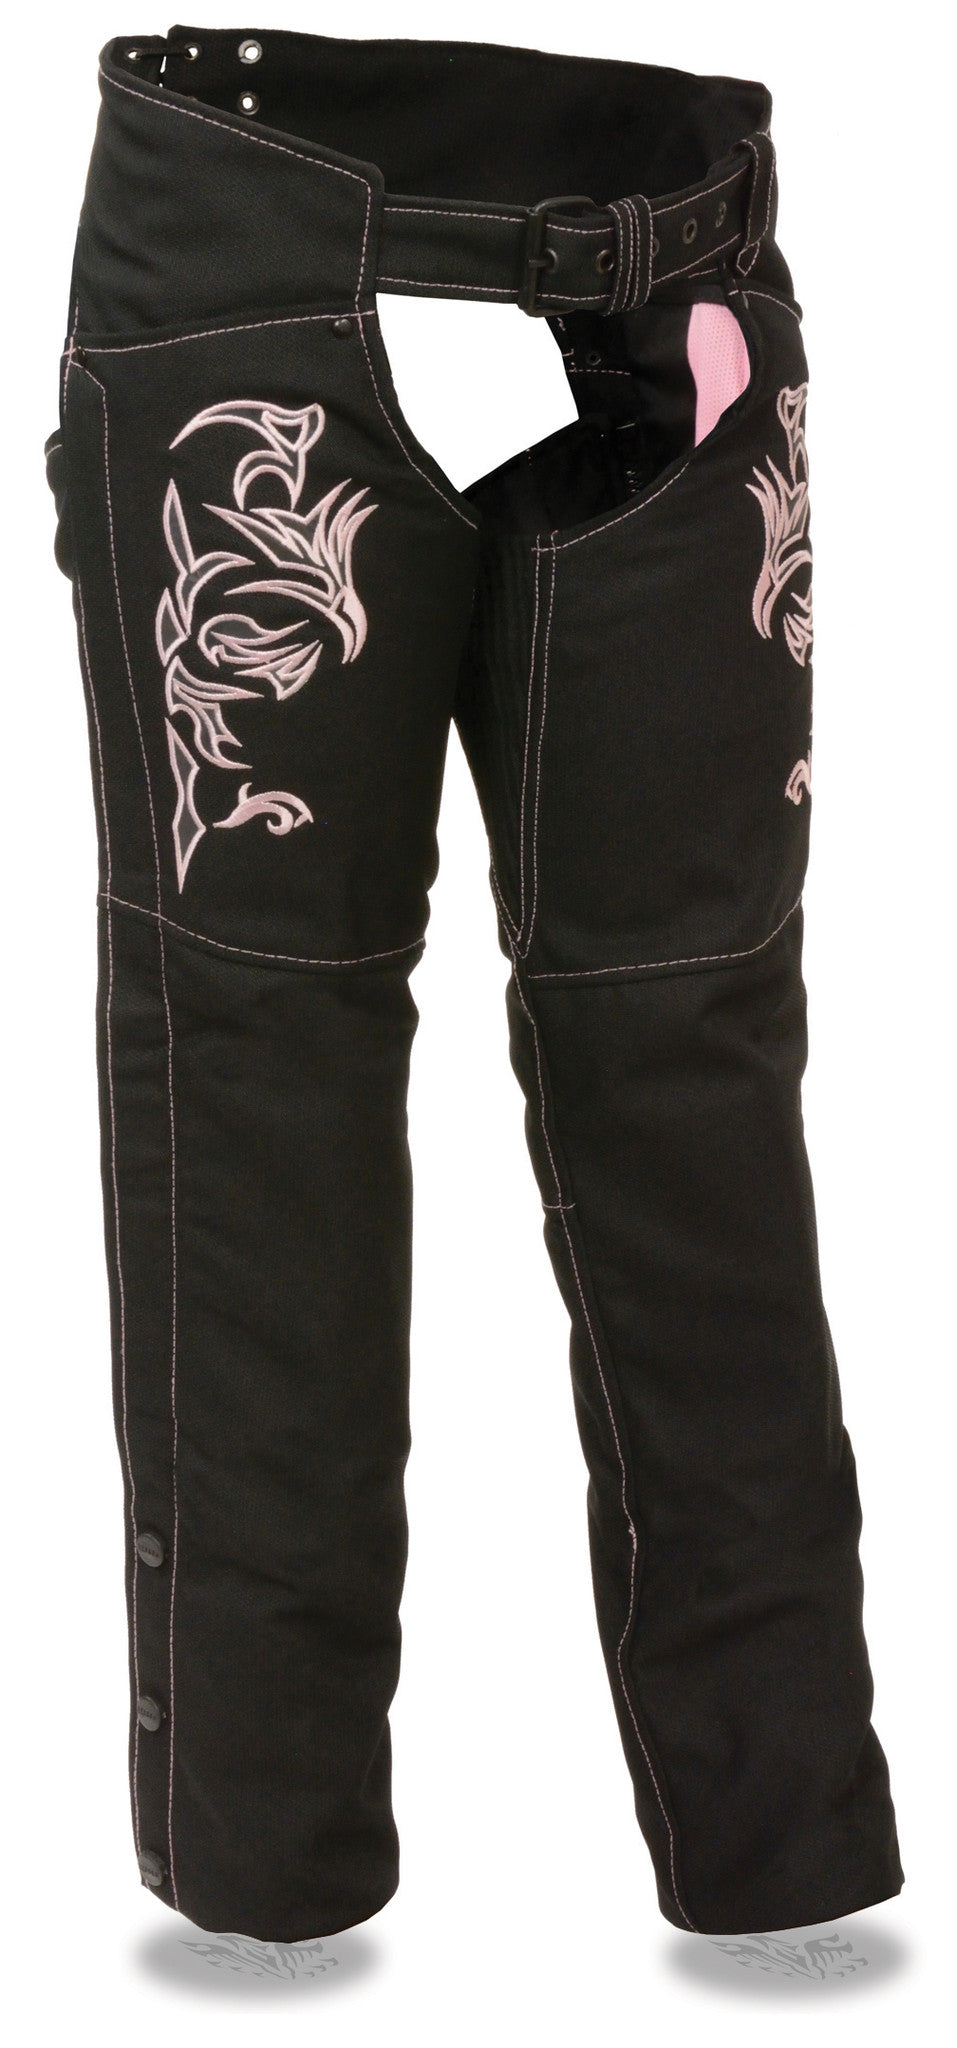 WOMEN'S MOTORCYCLE TEXTILE CHAP W/PINK REFLECTIVE EMBROIDERY